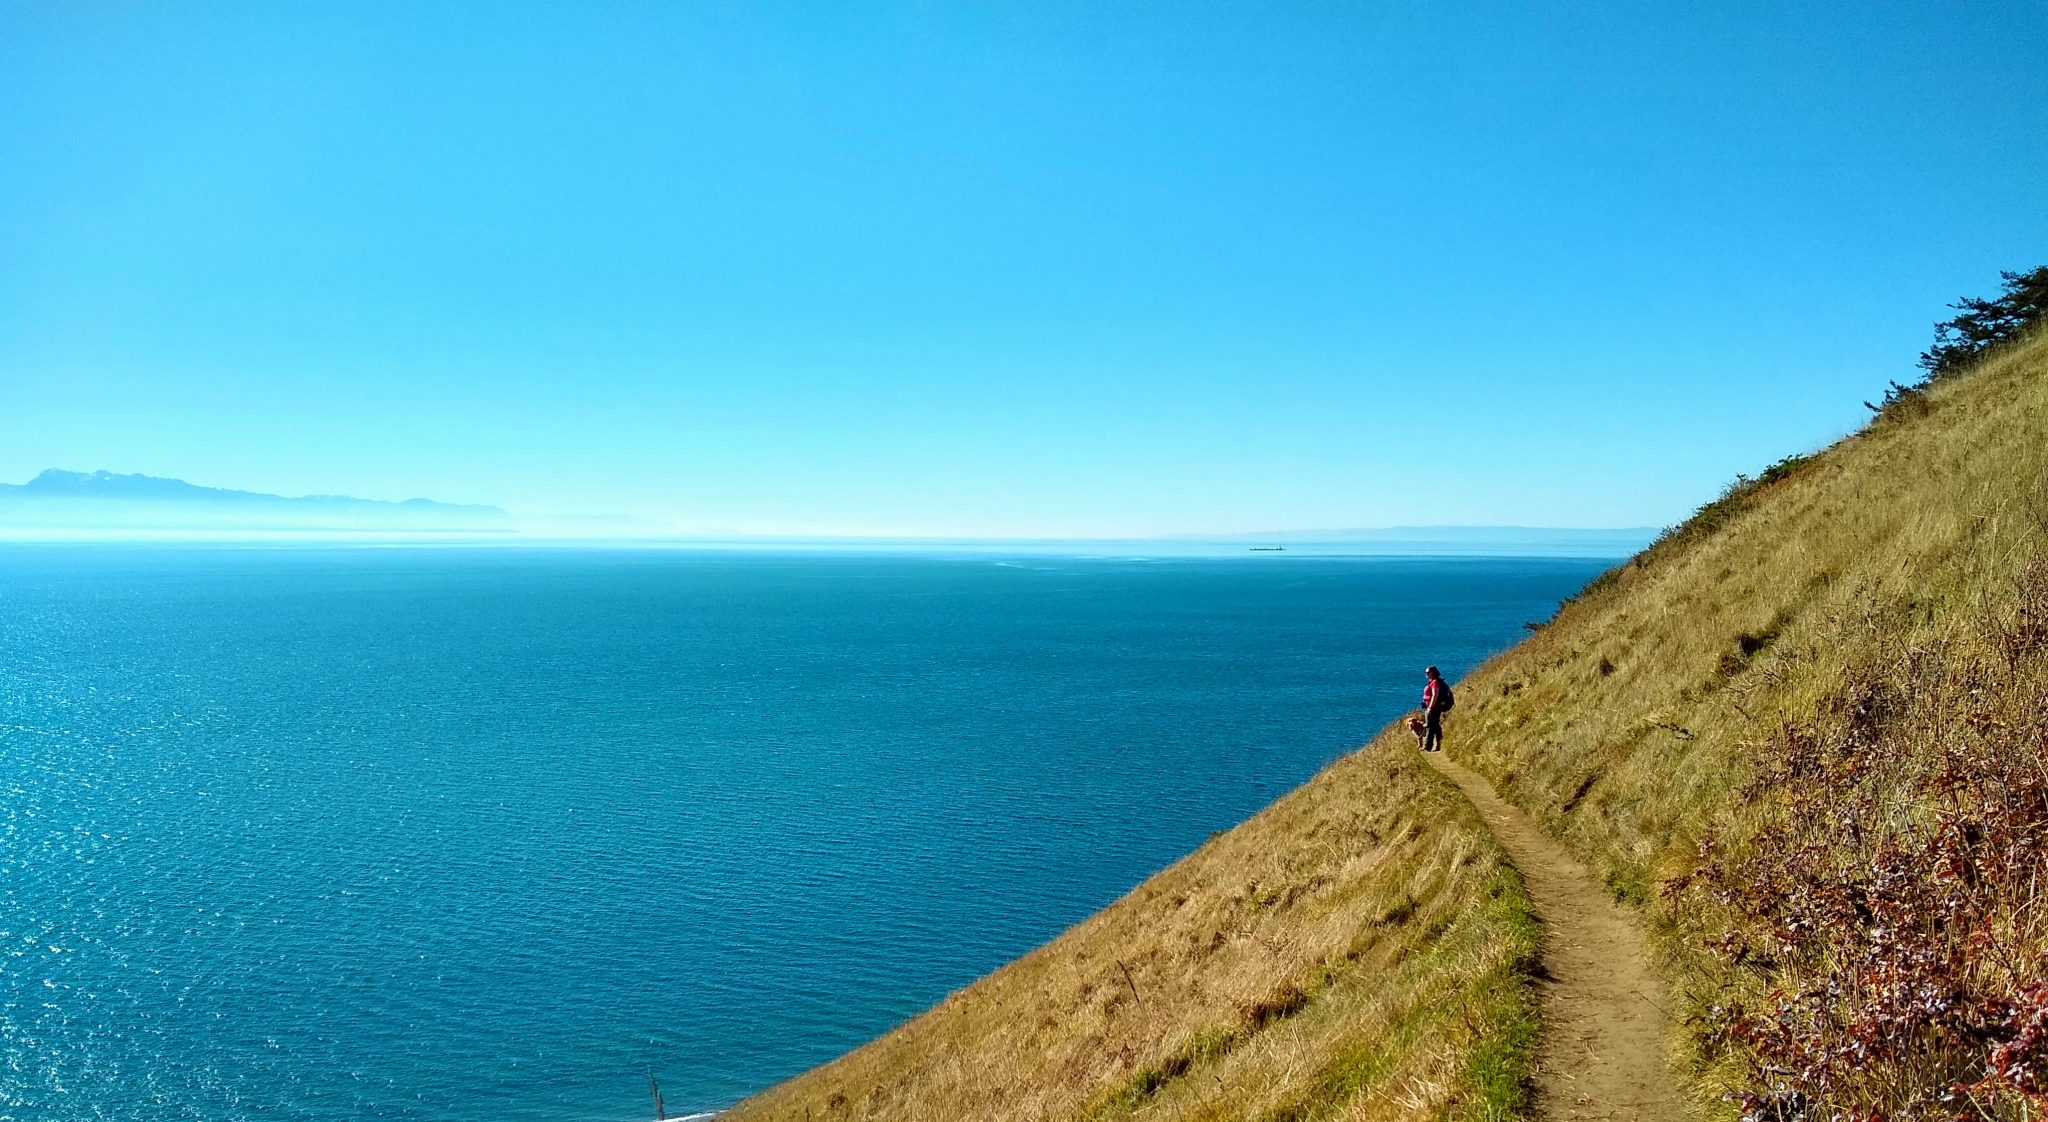 a hiker on a trail along a bluff next to an expanse of blue water on the Ebey's Landing trail, one of the best hikes in Washington